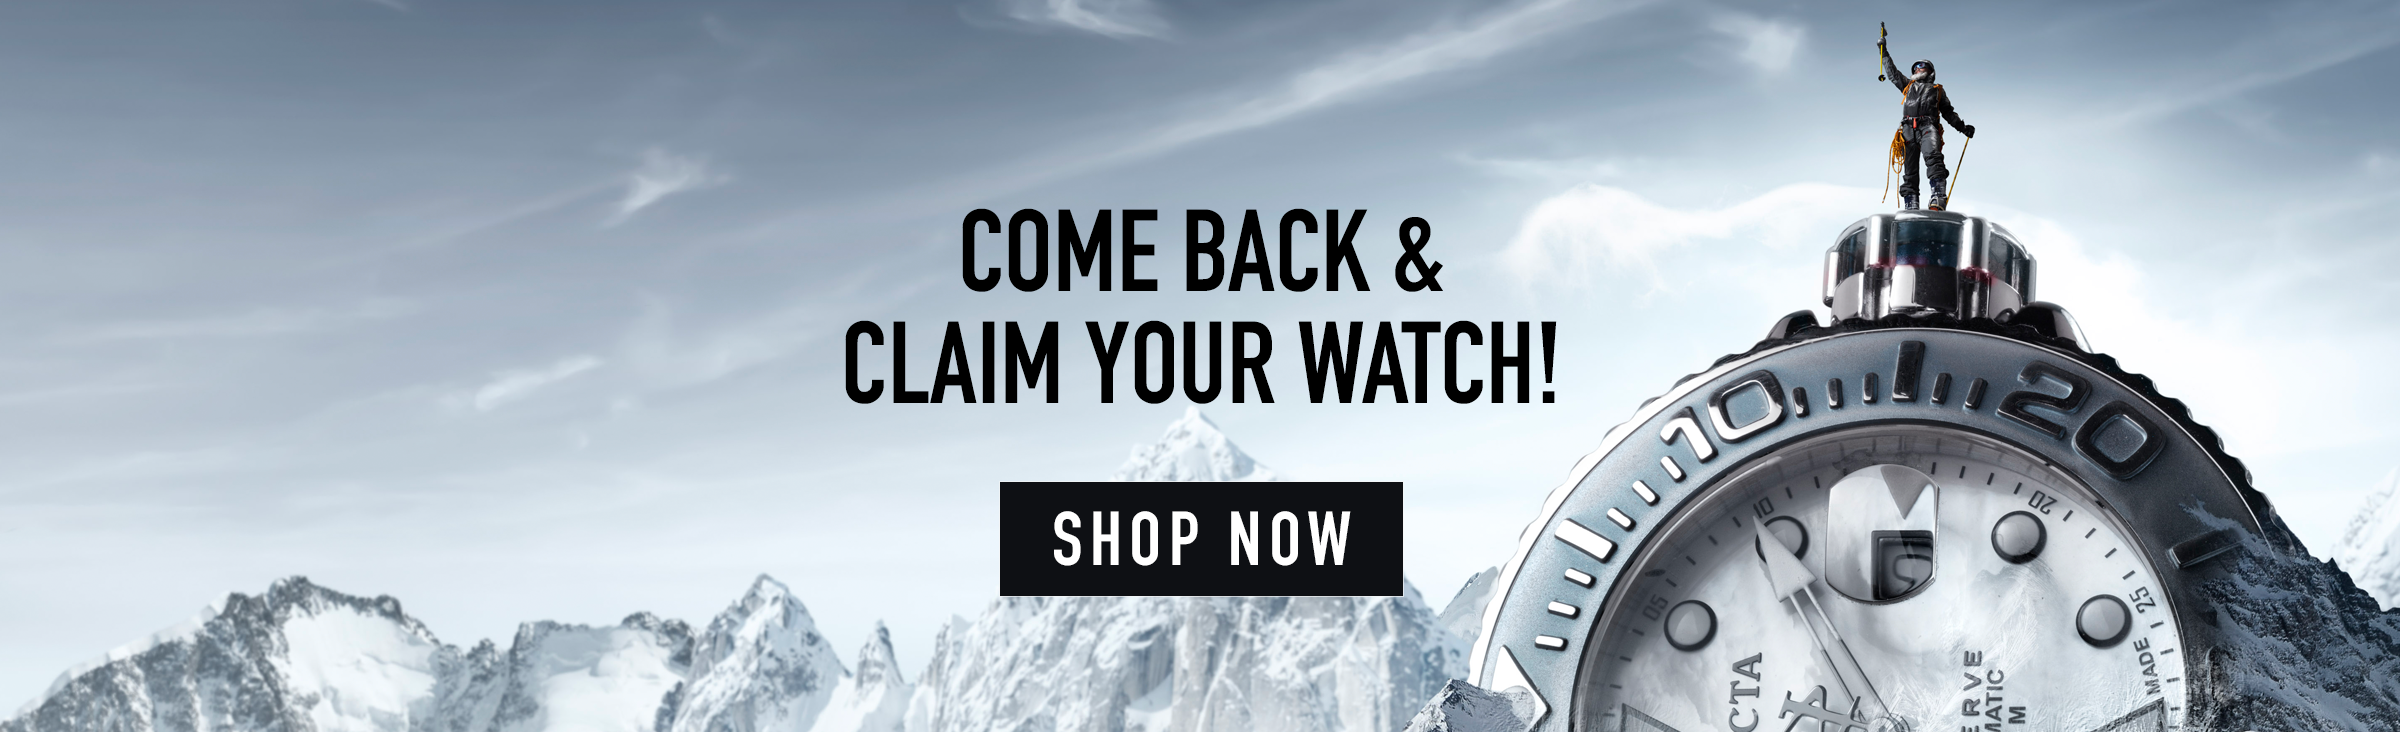 Come back and claim your watch. Shop Now